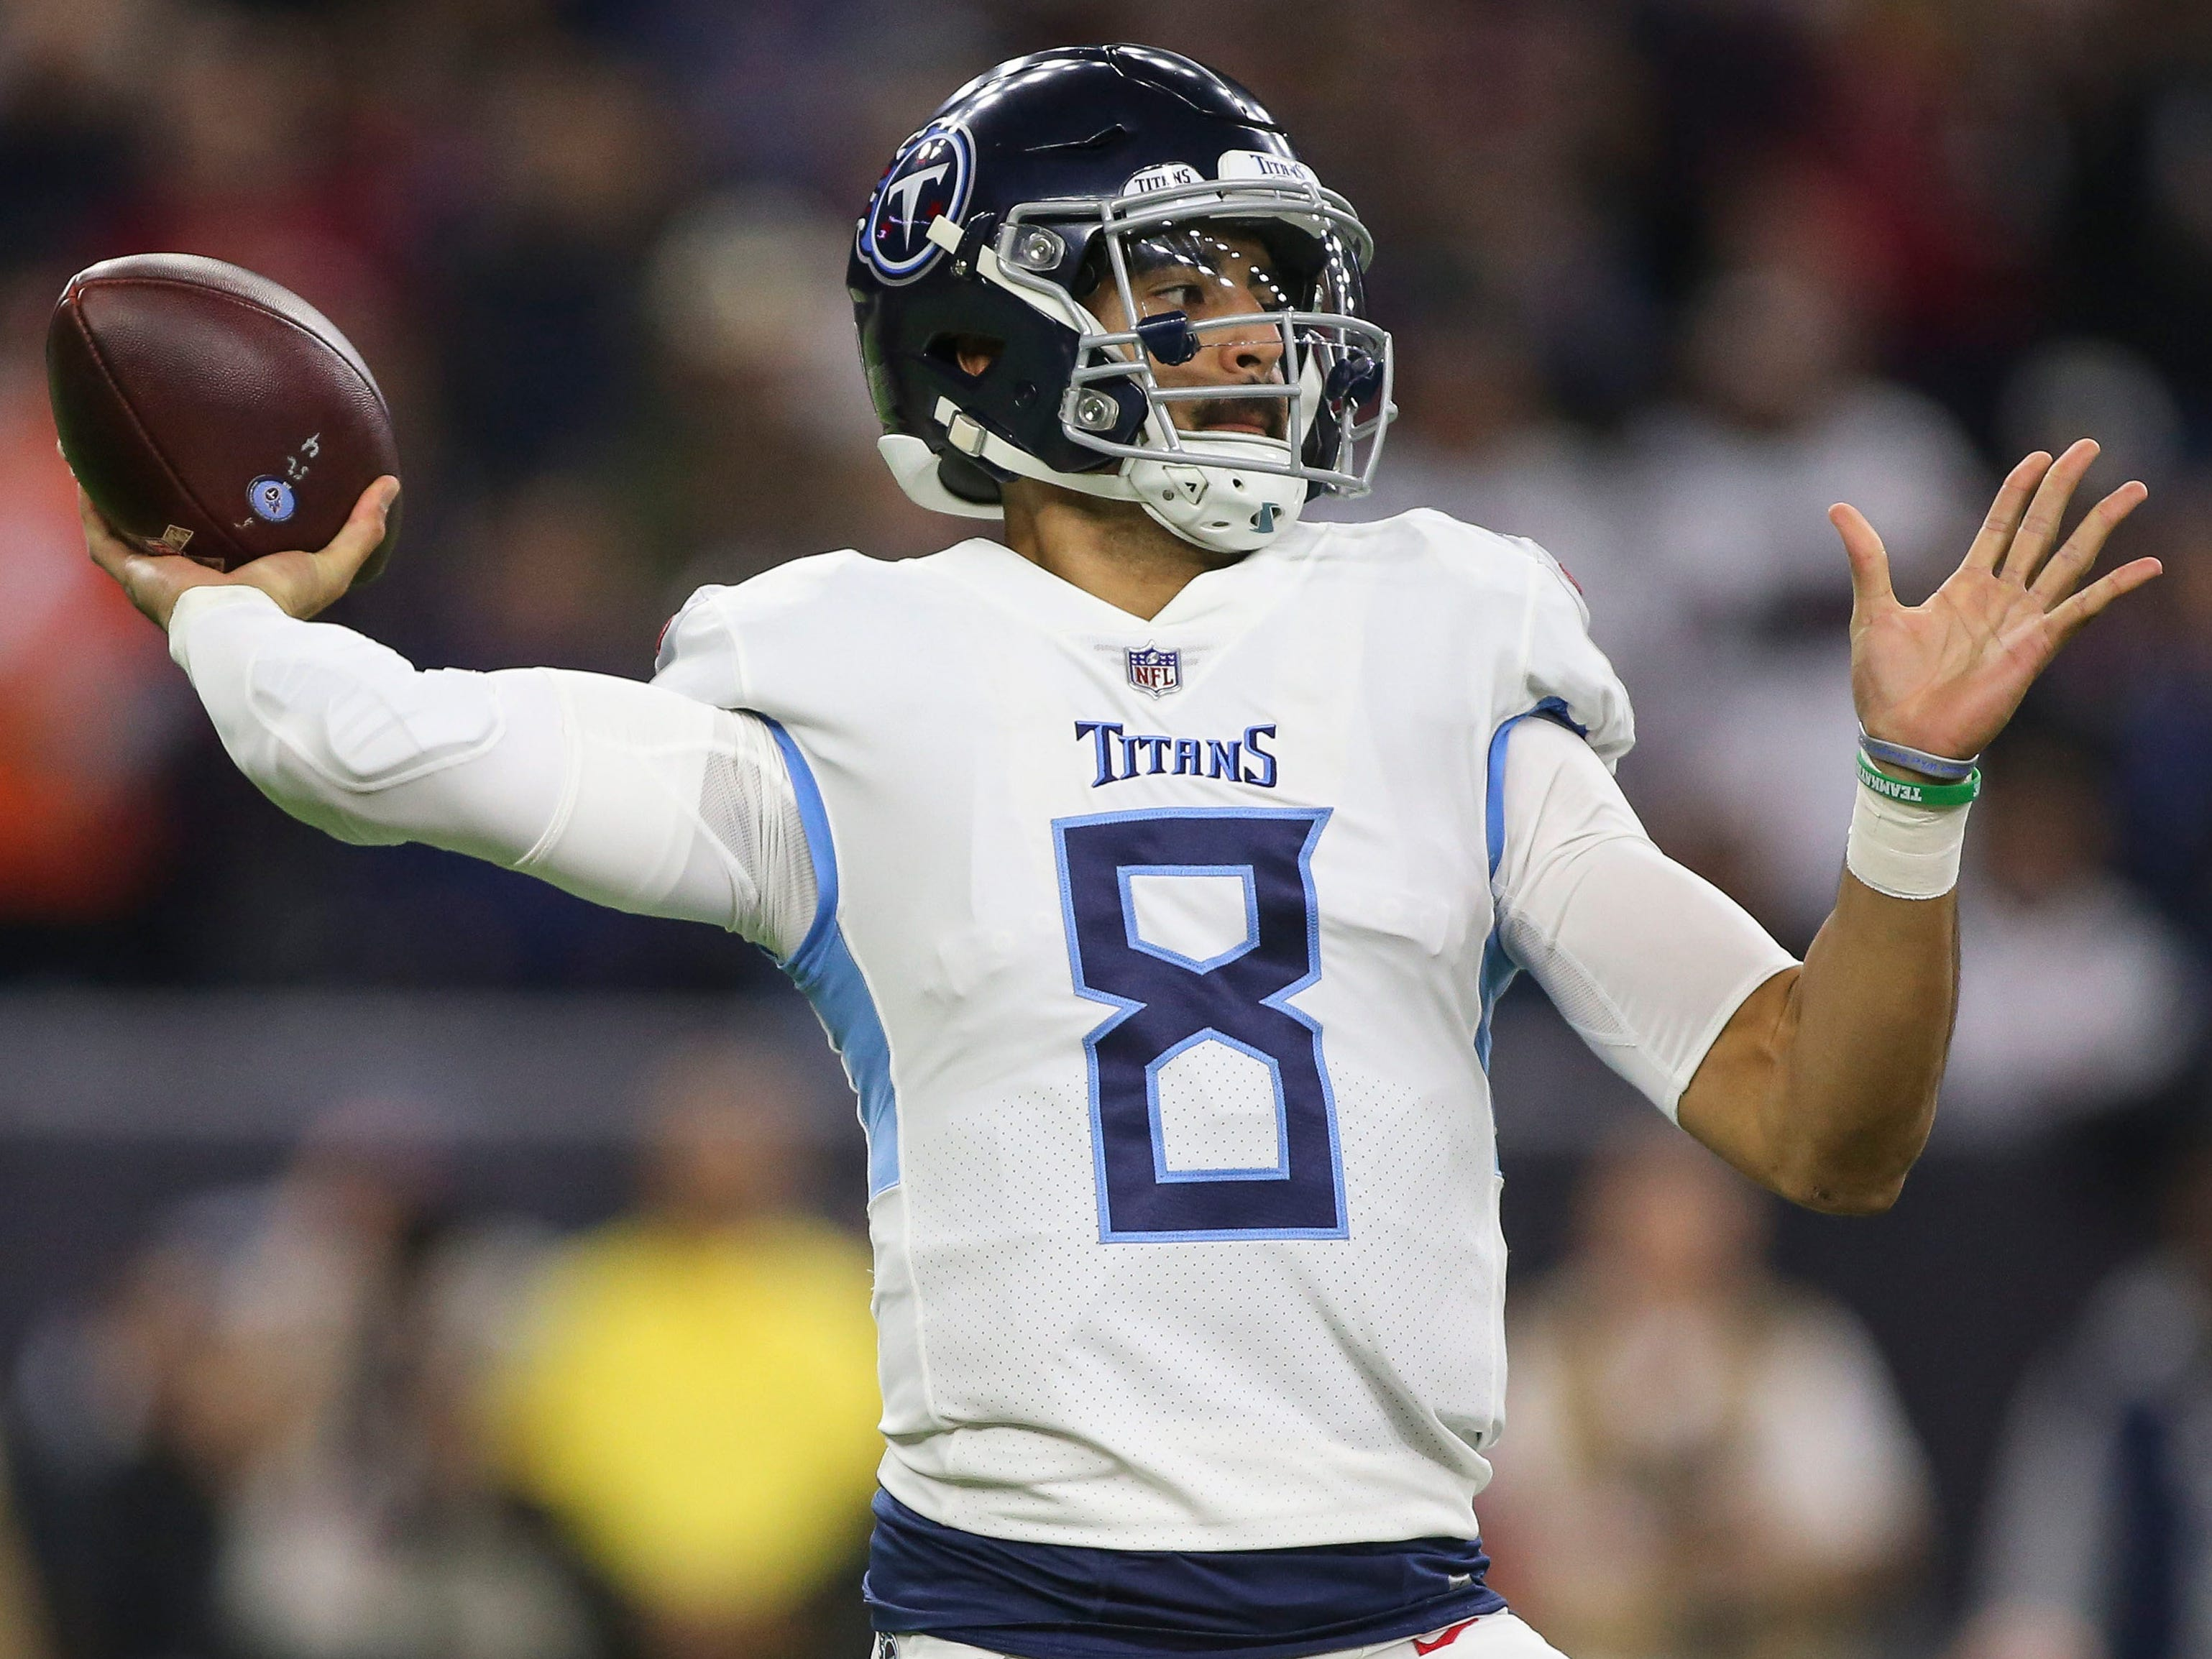 21. Titans (20): Marcus Mariota will now try to meld with his fourth offensive coordinator in five years. Fun. However they might surprise if new pieces jell.